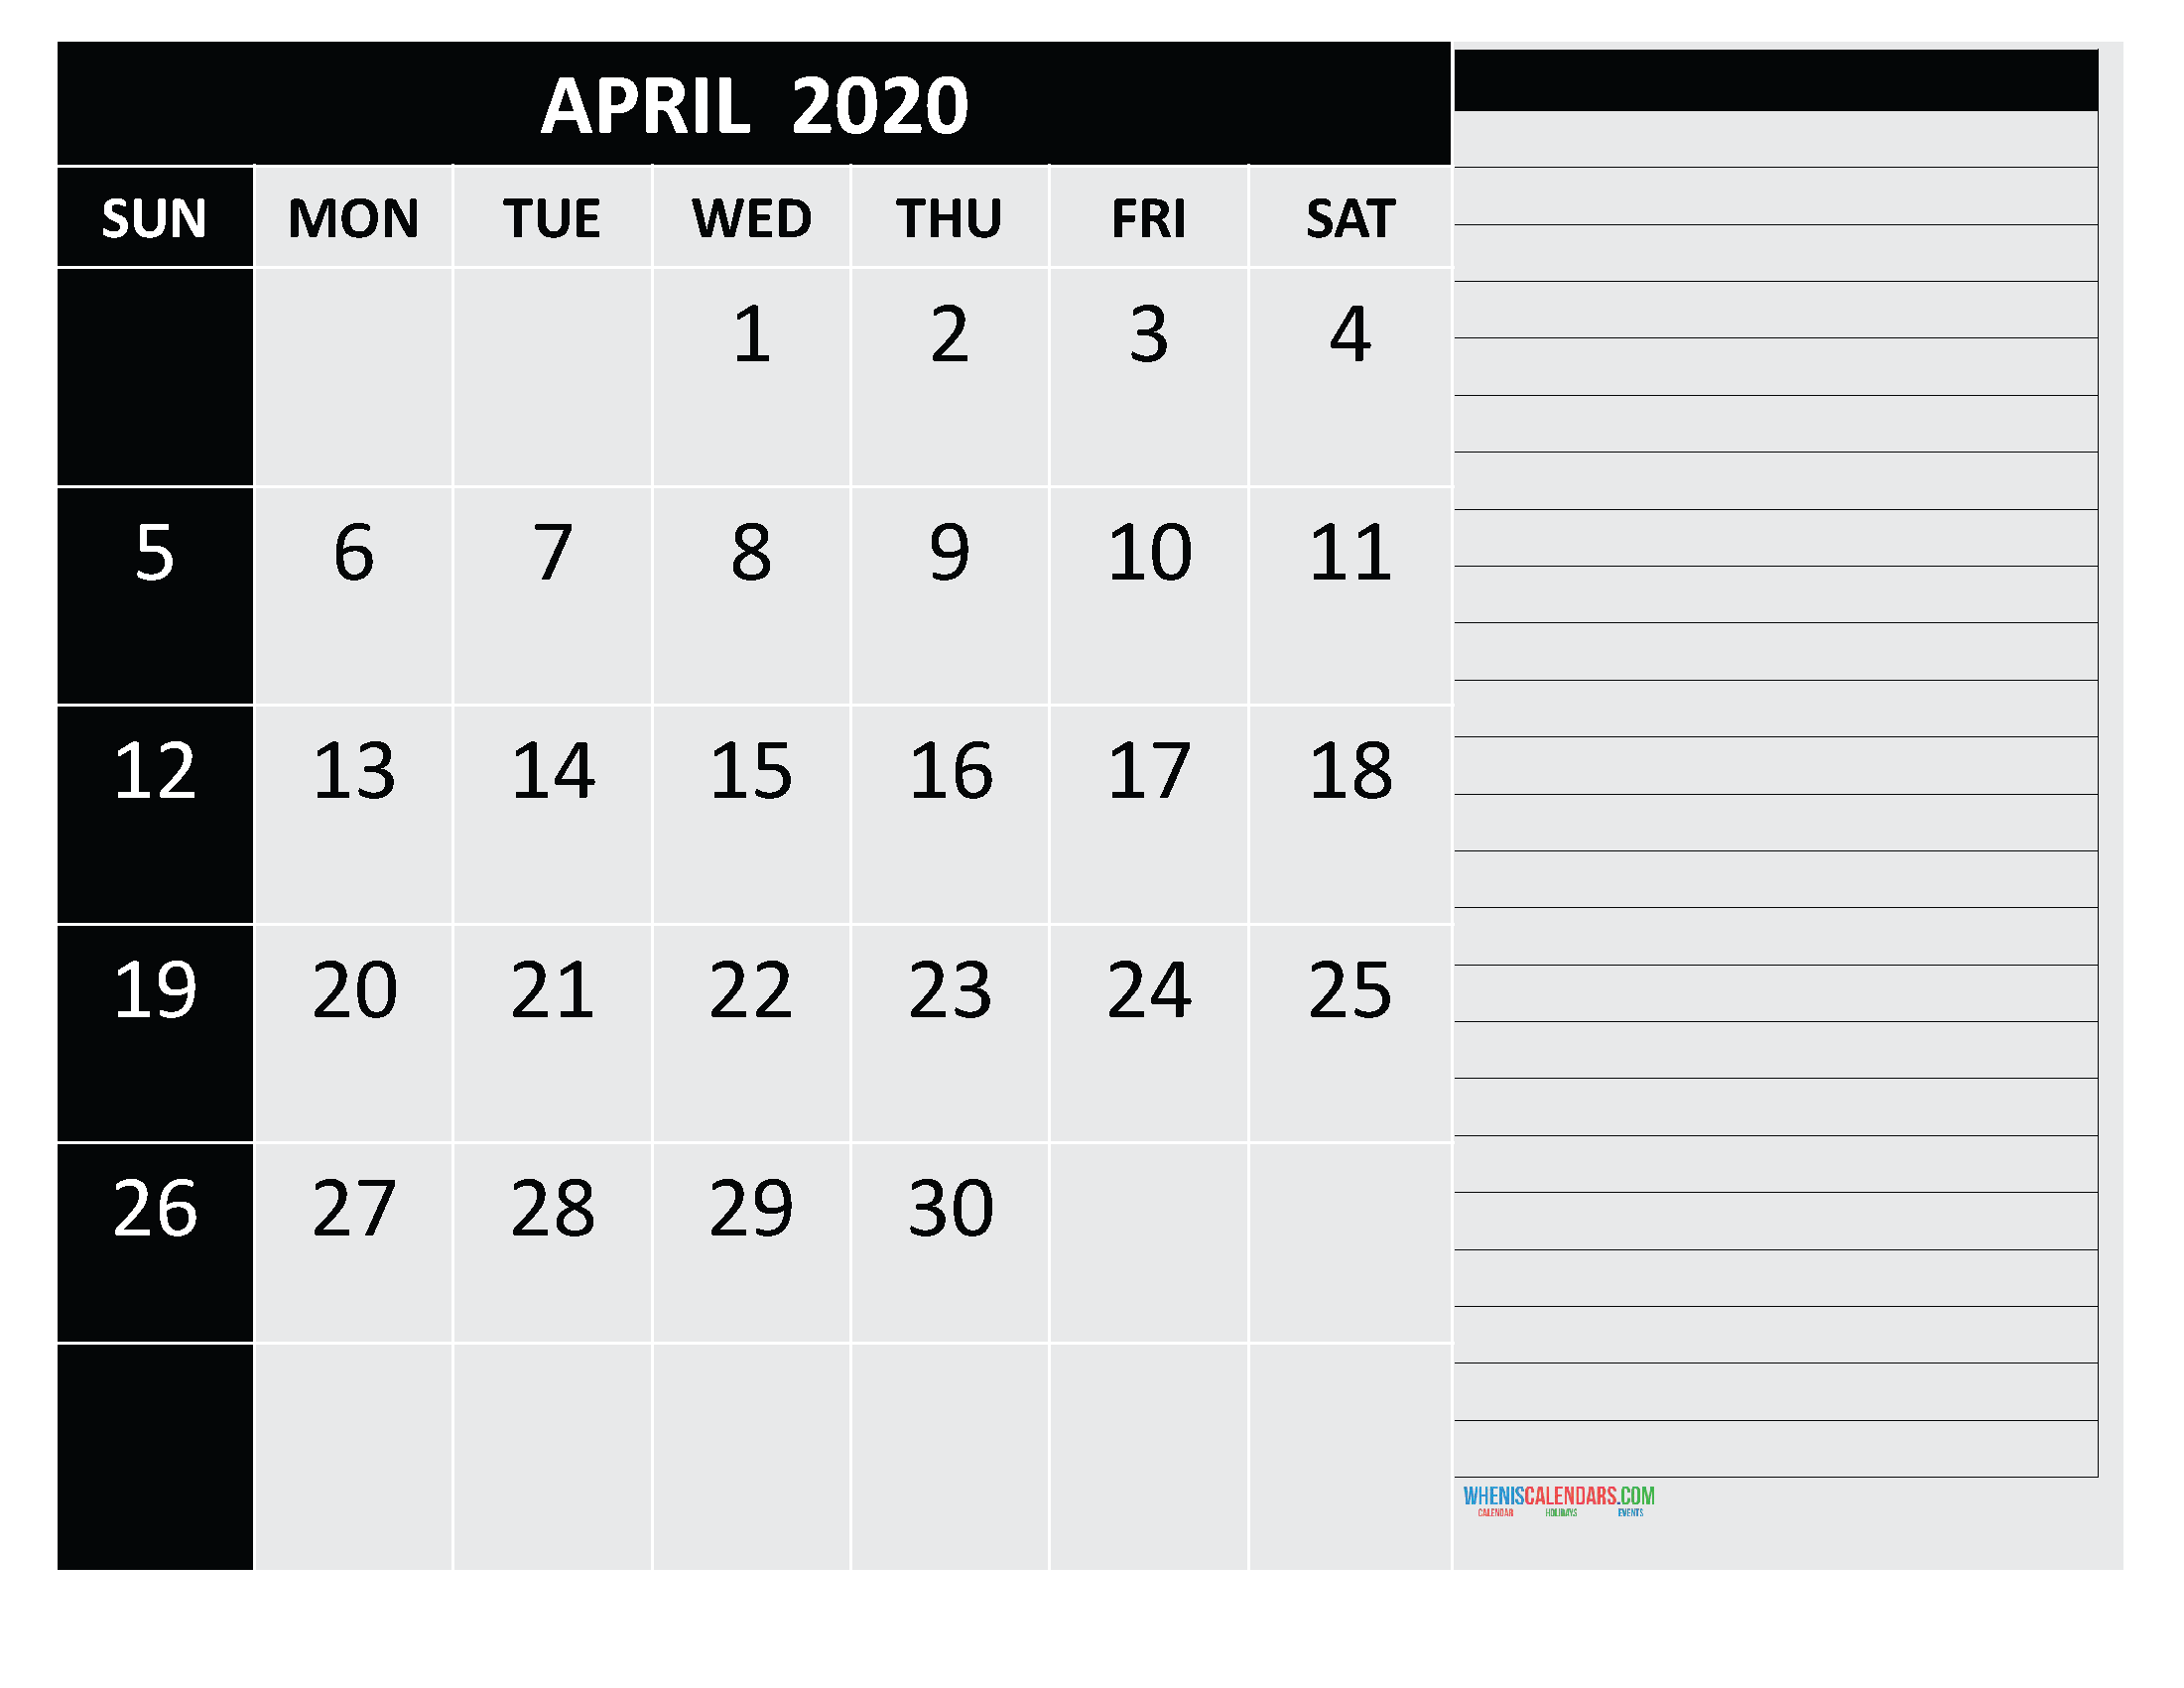 Free Monthly Printable Calendar 2020 April with Holidays